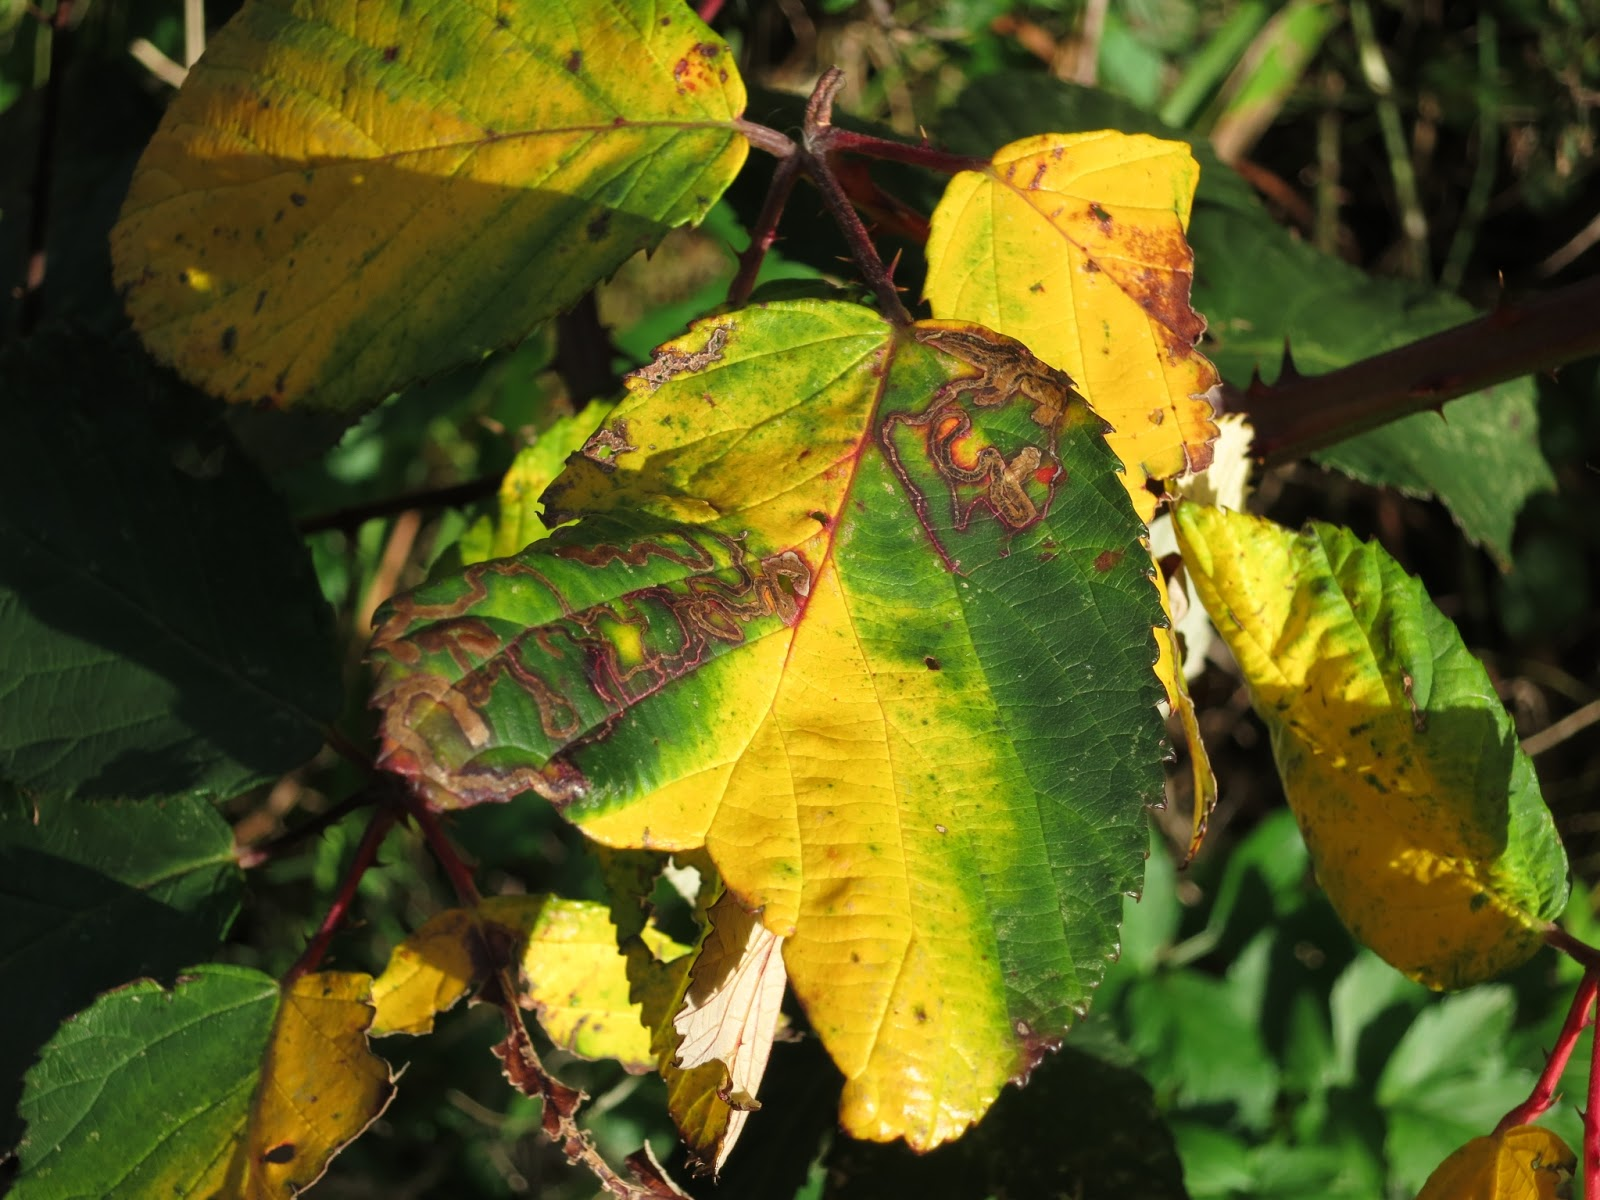 A green and yellow bramble leaf showing miner tunnels and a hunk missing.